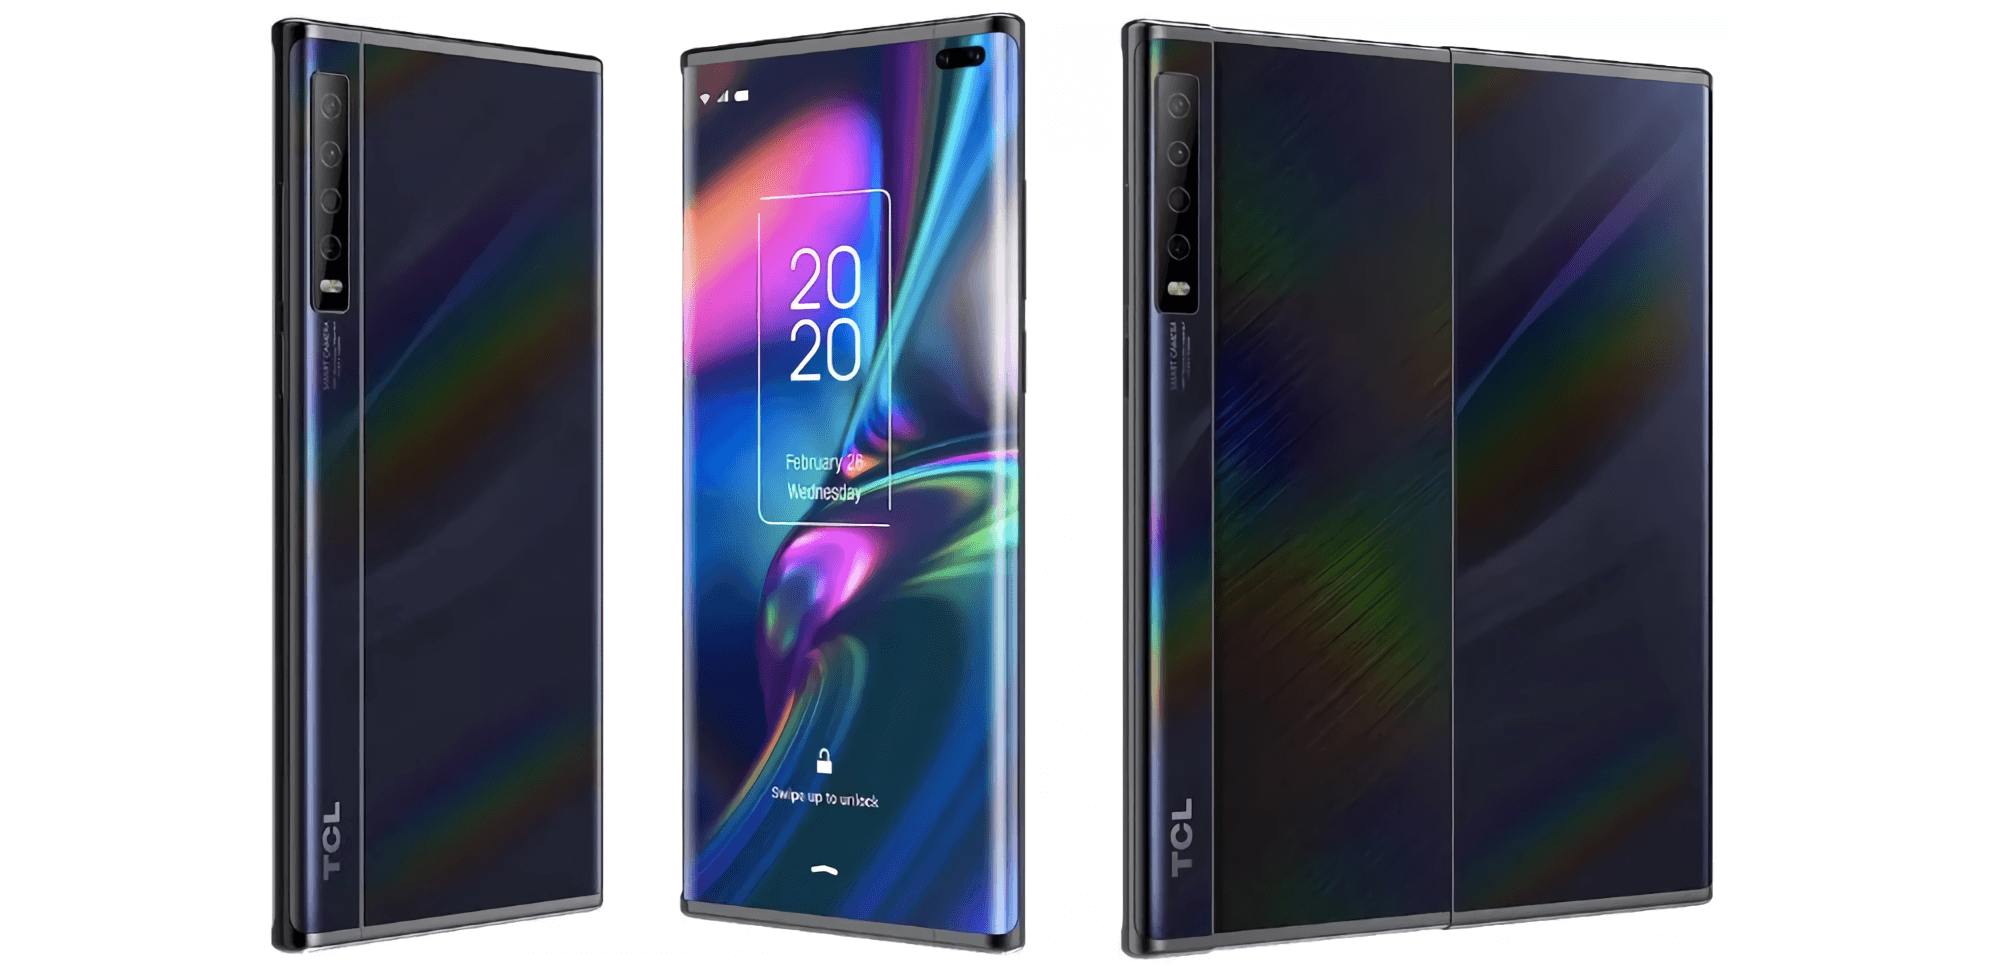 Leaked photos reveal TCL working on prototype smartphone with a slide-out display